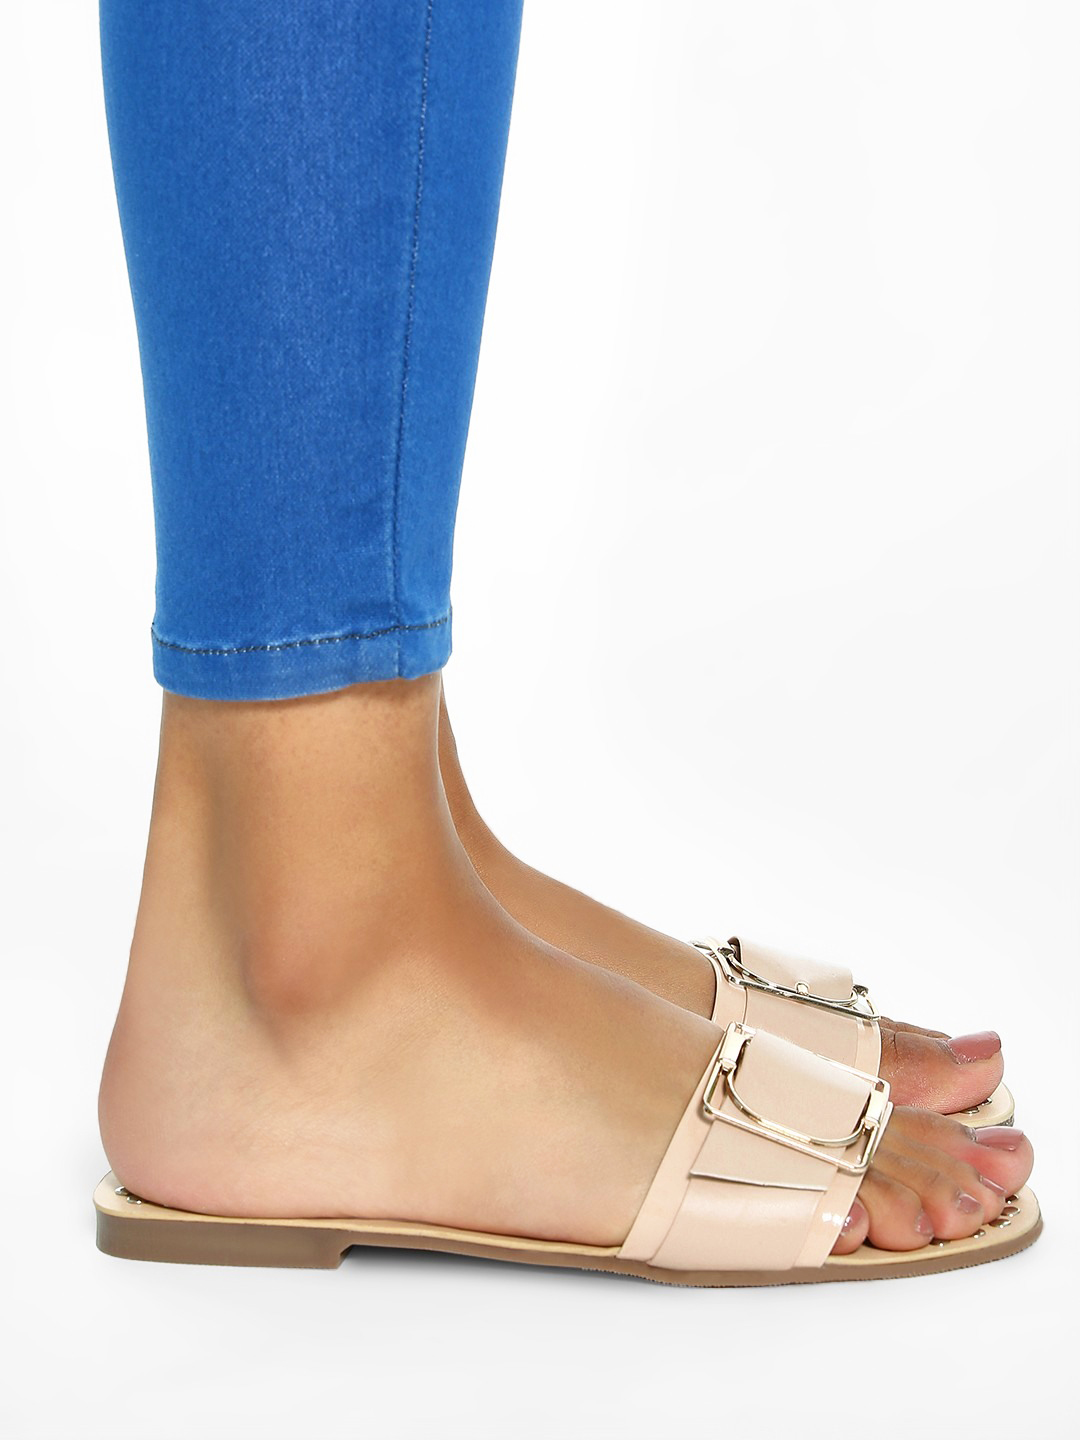 My Foot Couture Beige Buckle Strap Studded Flat Sandals 1